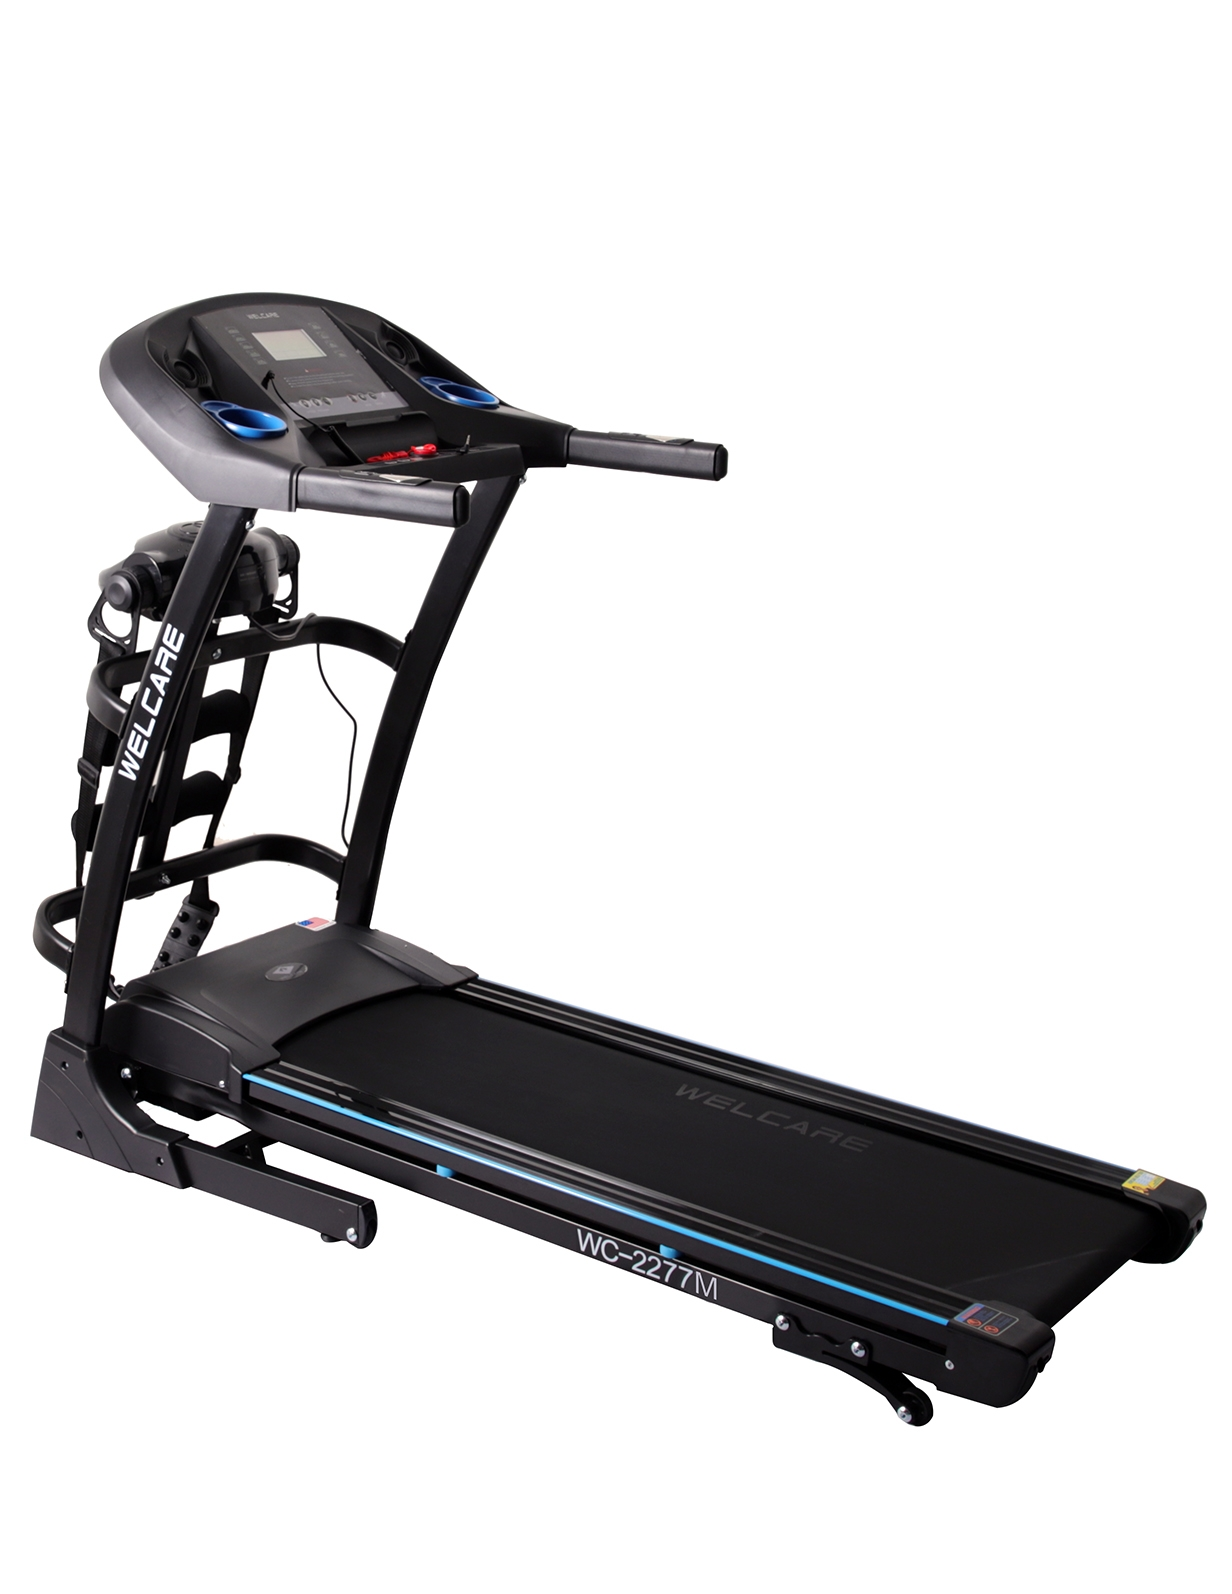 WC 2277M MOTORIZED TREADMILL